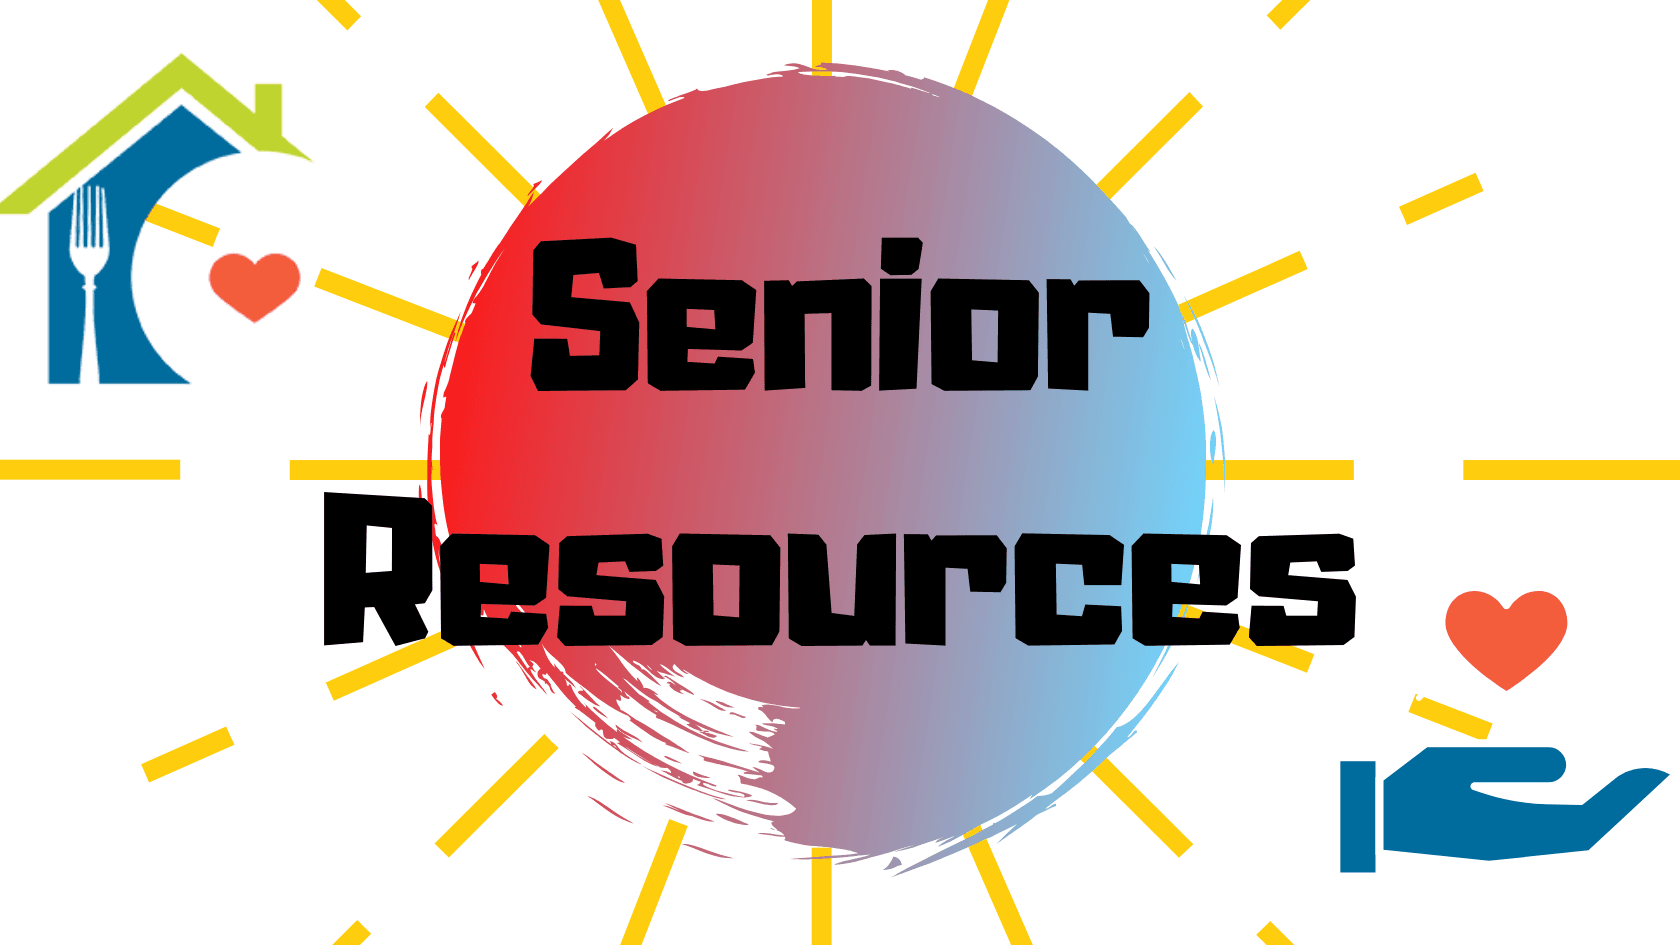 Senior Resources